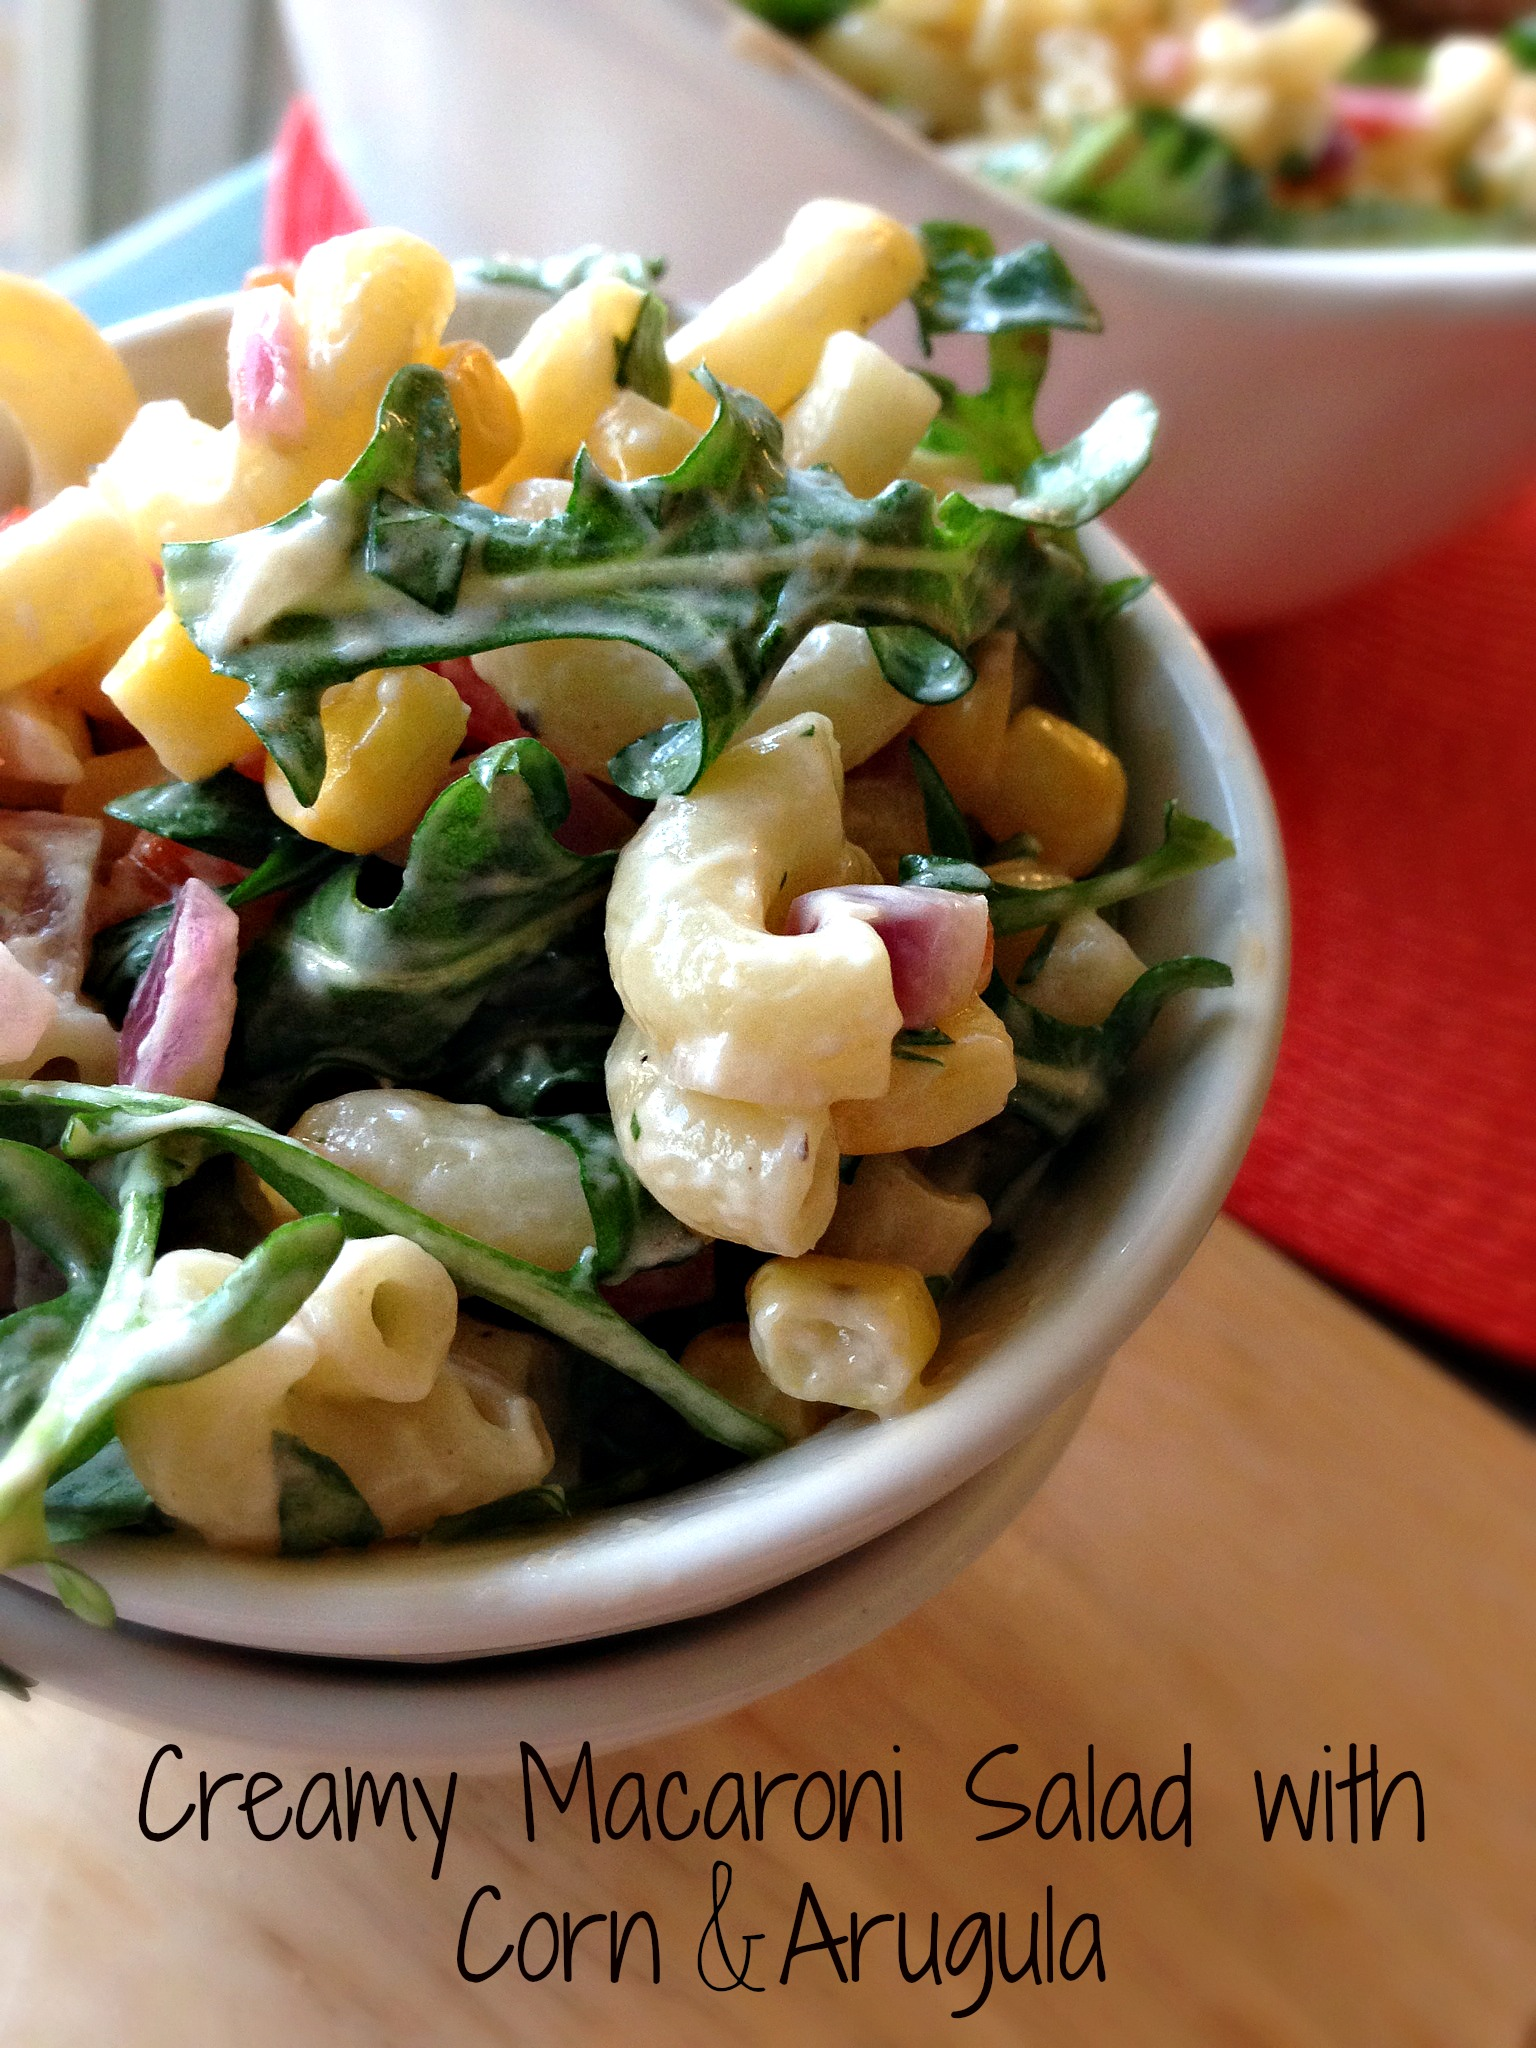 Creamy Macaroni Salad with Corn & Arugula